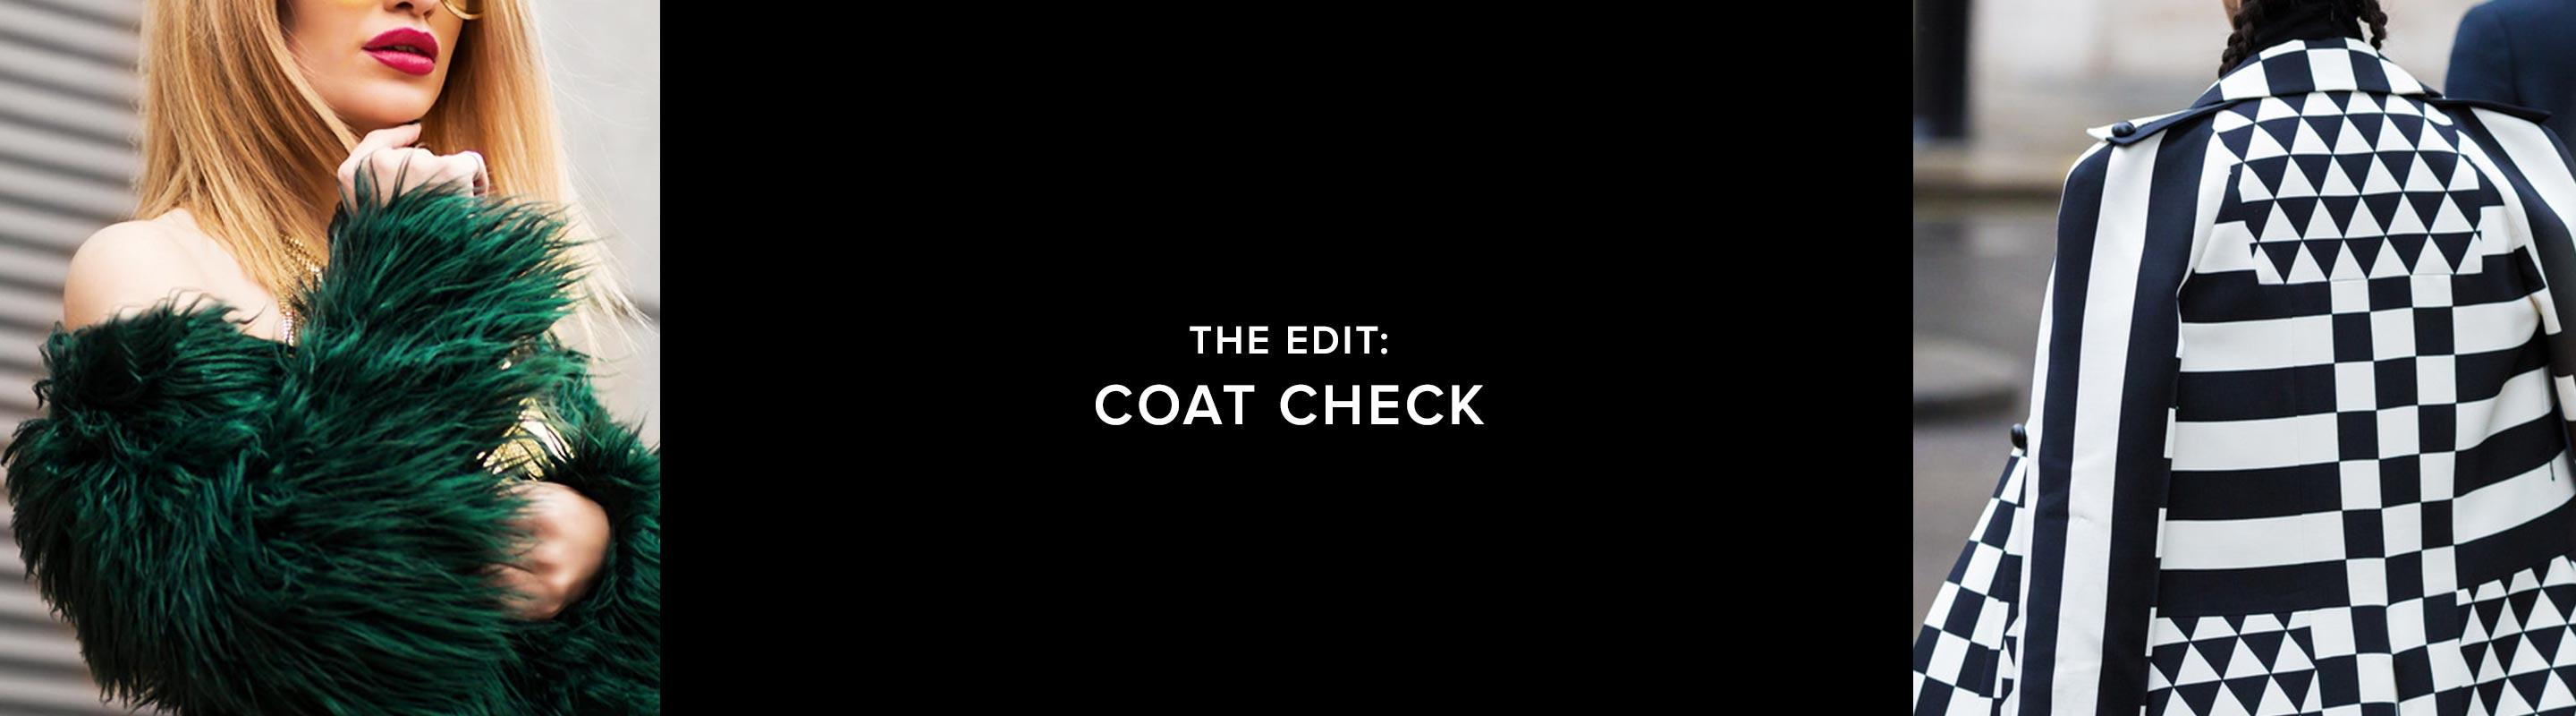 The Edit: Coat Check